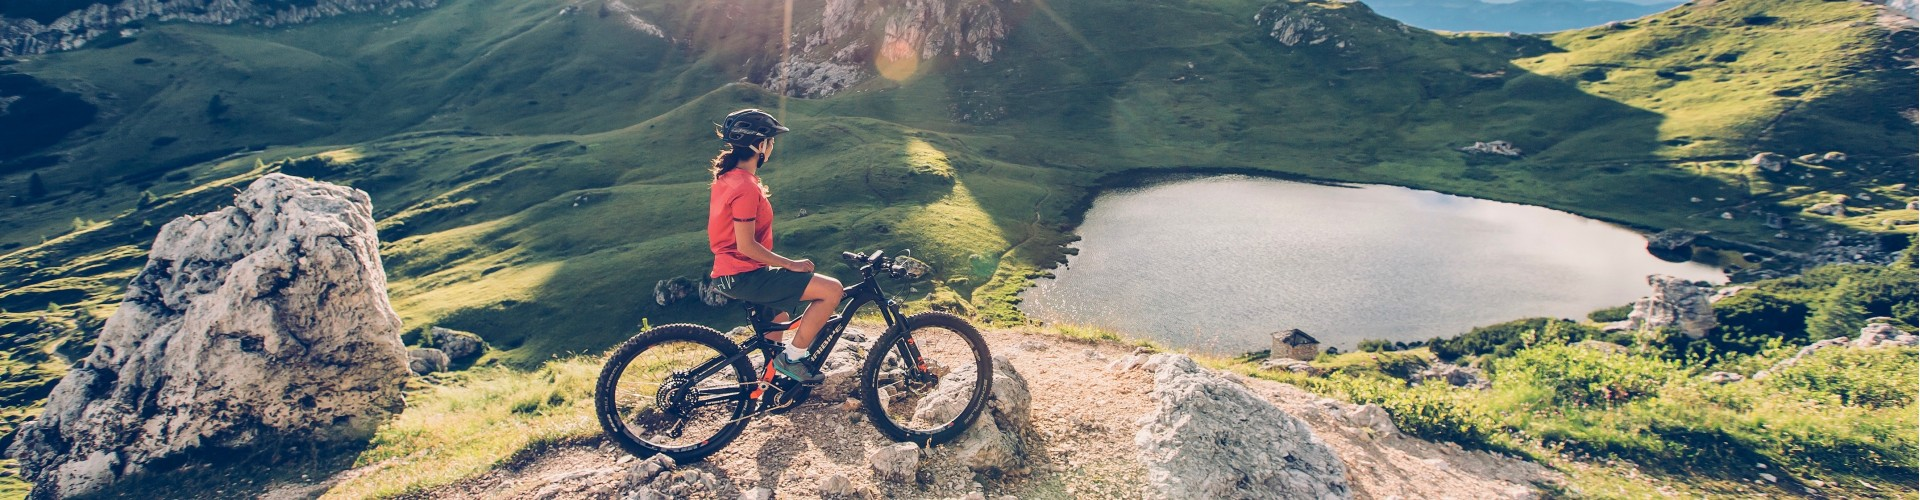 15% Off Women's eBikes Until March 1st